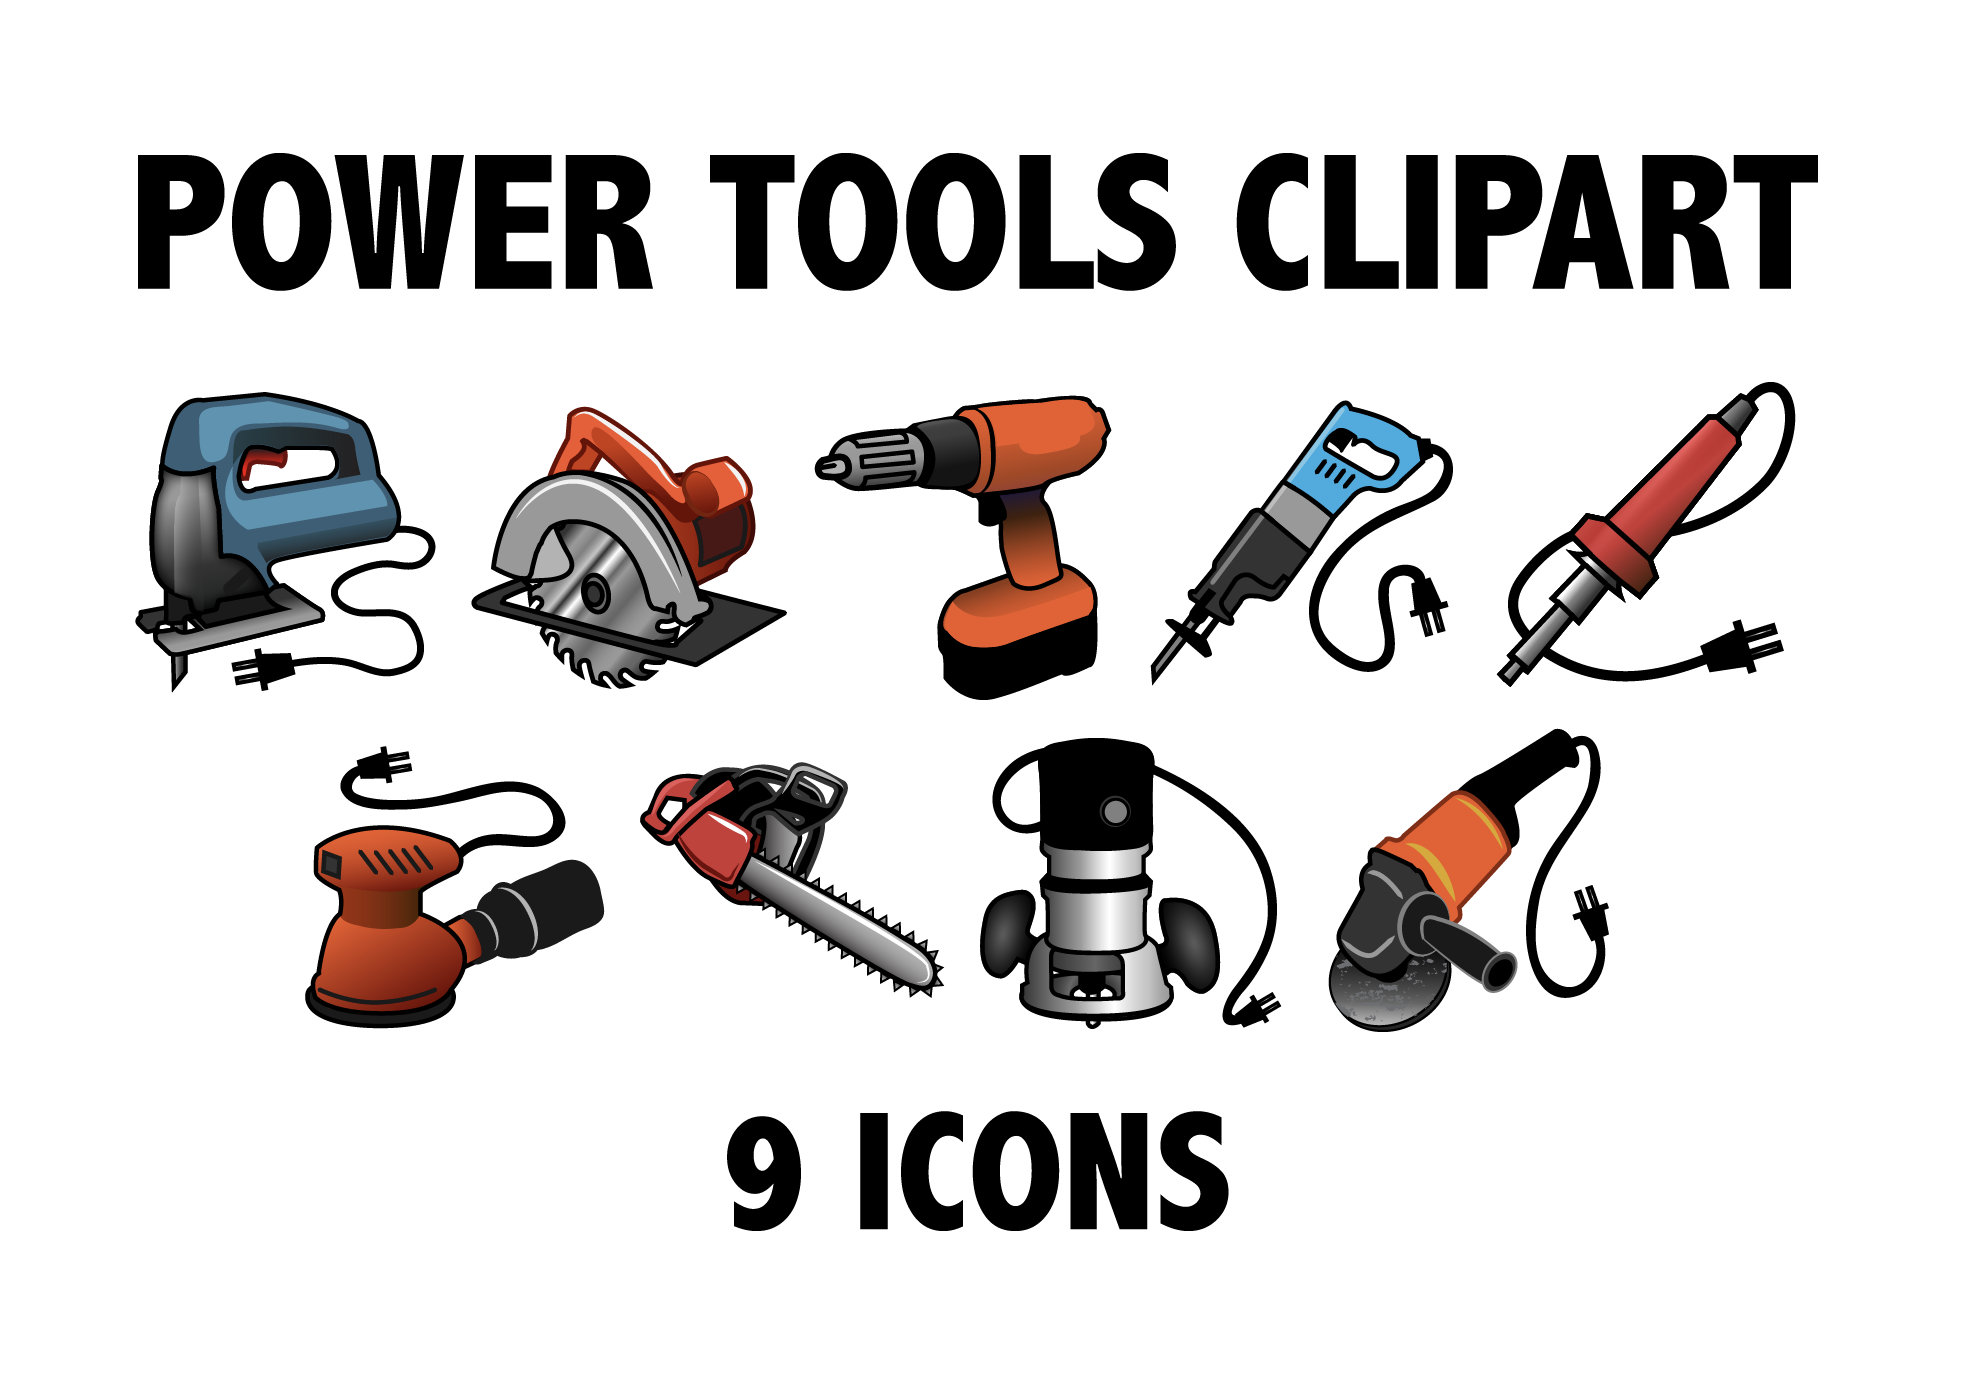 POWER TOOLS CLIPART.